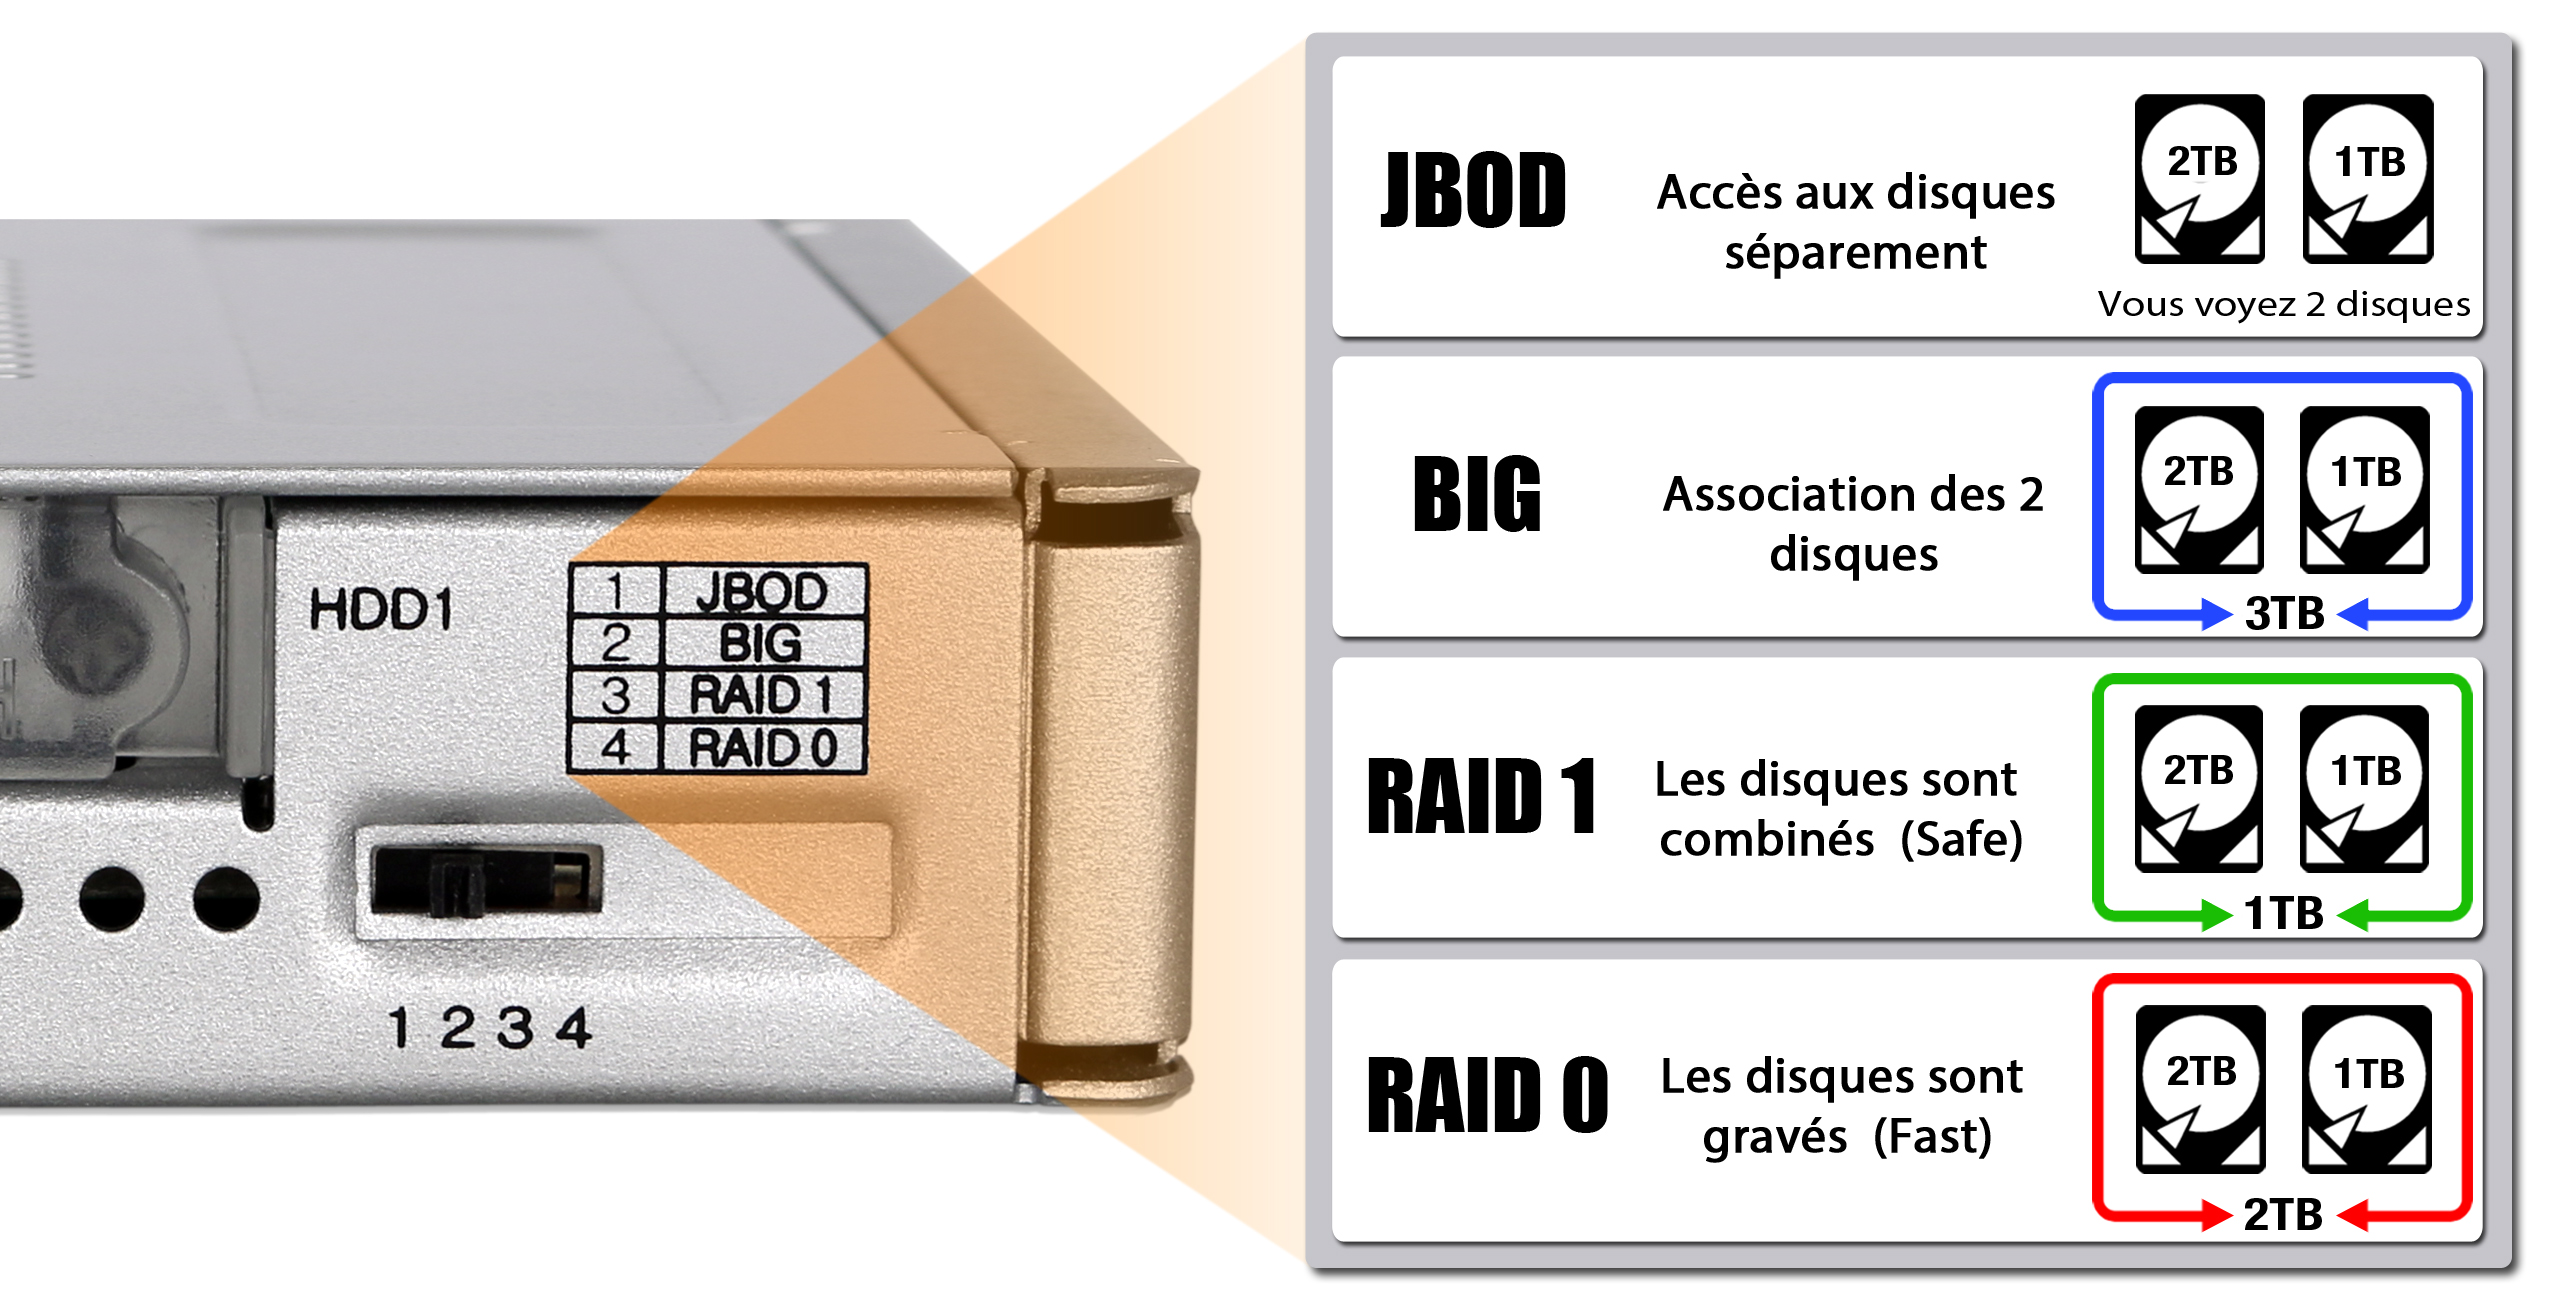 Photo des 4 modes du MB982SPR-2S R1 : JBOD, BIG, RAID 1 et RAID 0